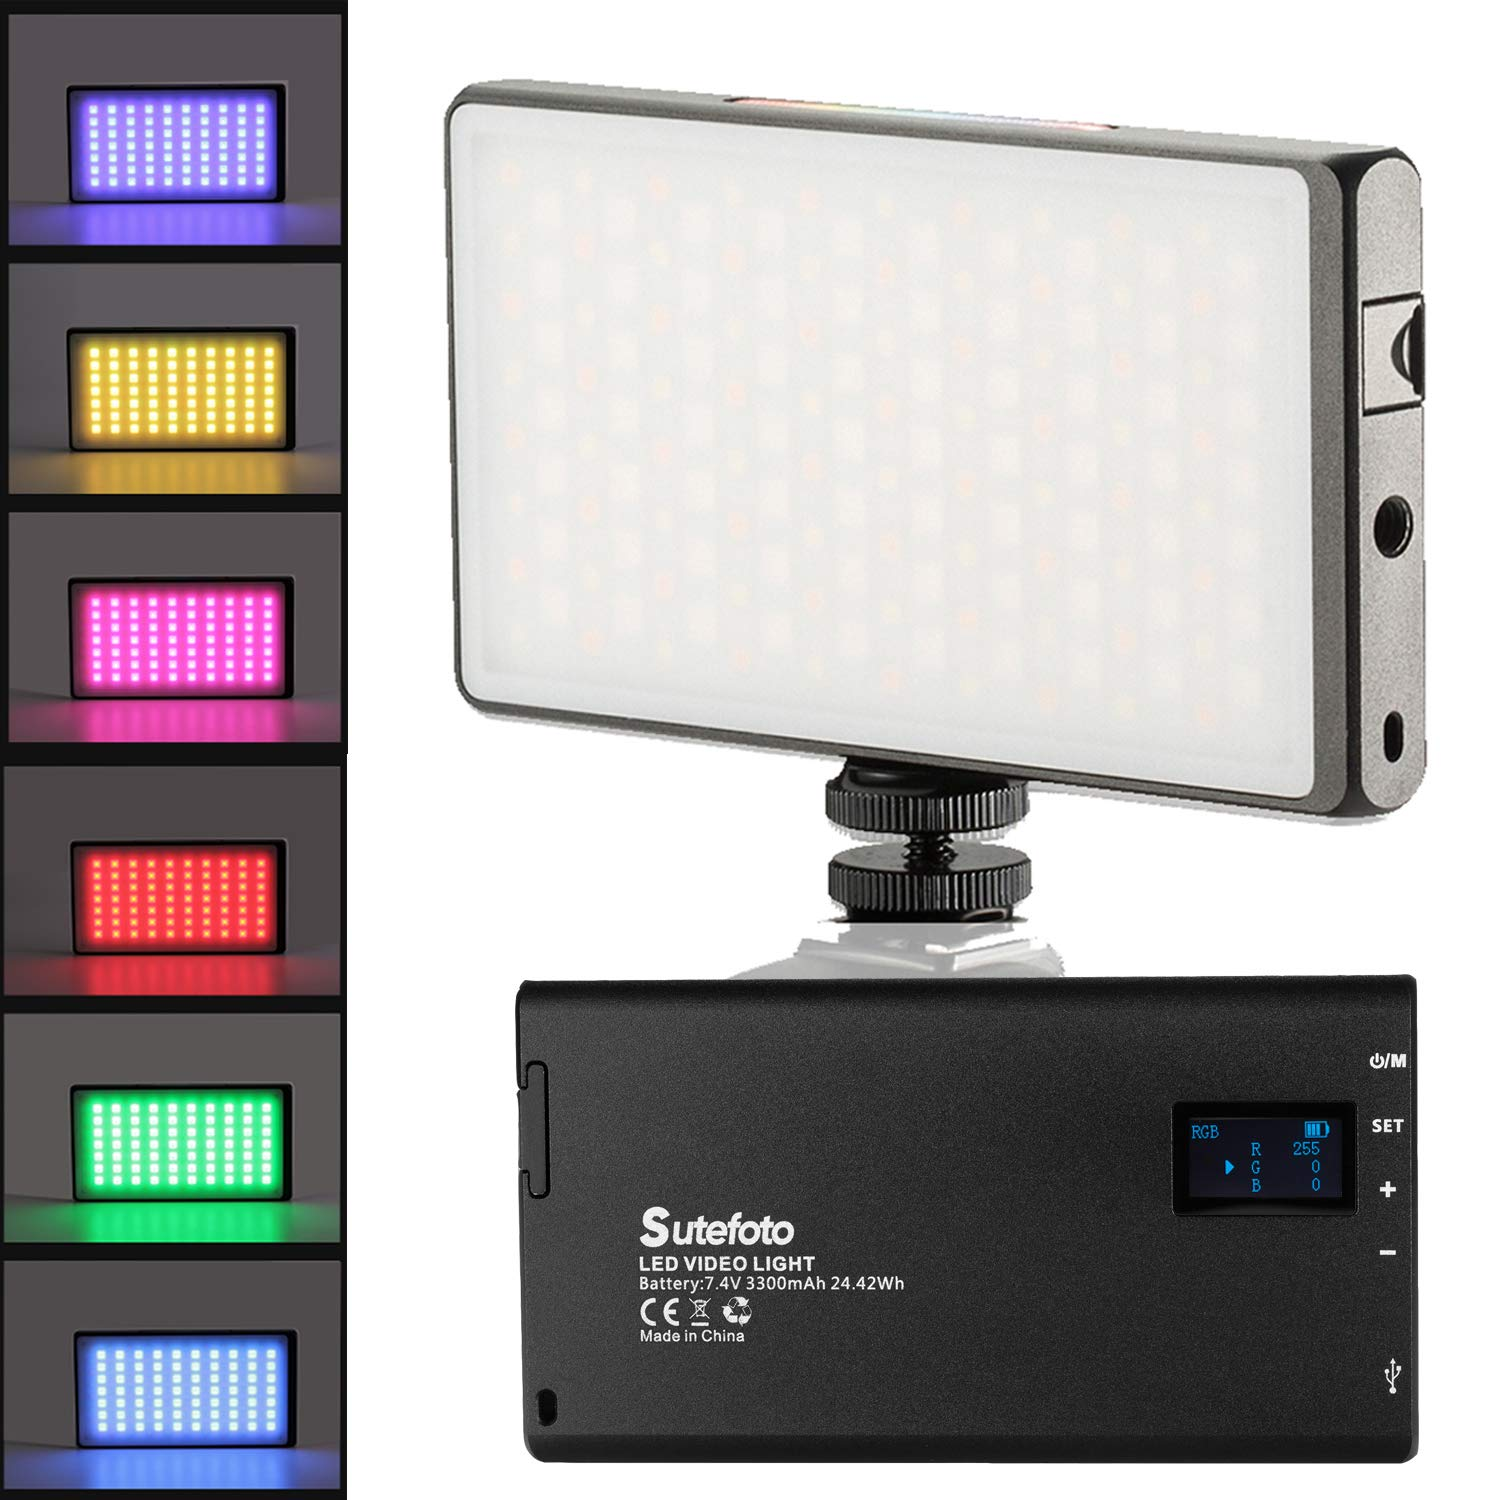 RGB LED Full Color Video Light CNC Aluminum Alloy Body 3300mAh Rechargeable Battery Pocket Light with Cold Shoe for Camera Camcorder with 2500K-8500K Color Range, 10 Scenario Simulations LCD Display by fotowelt